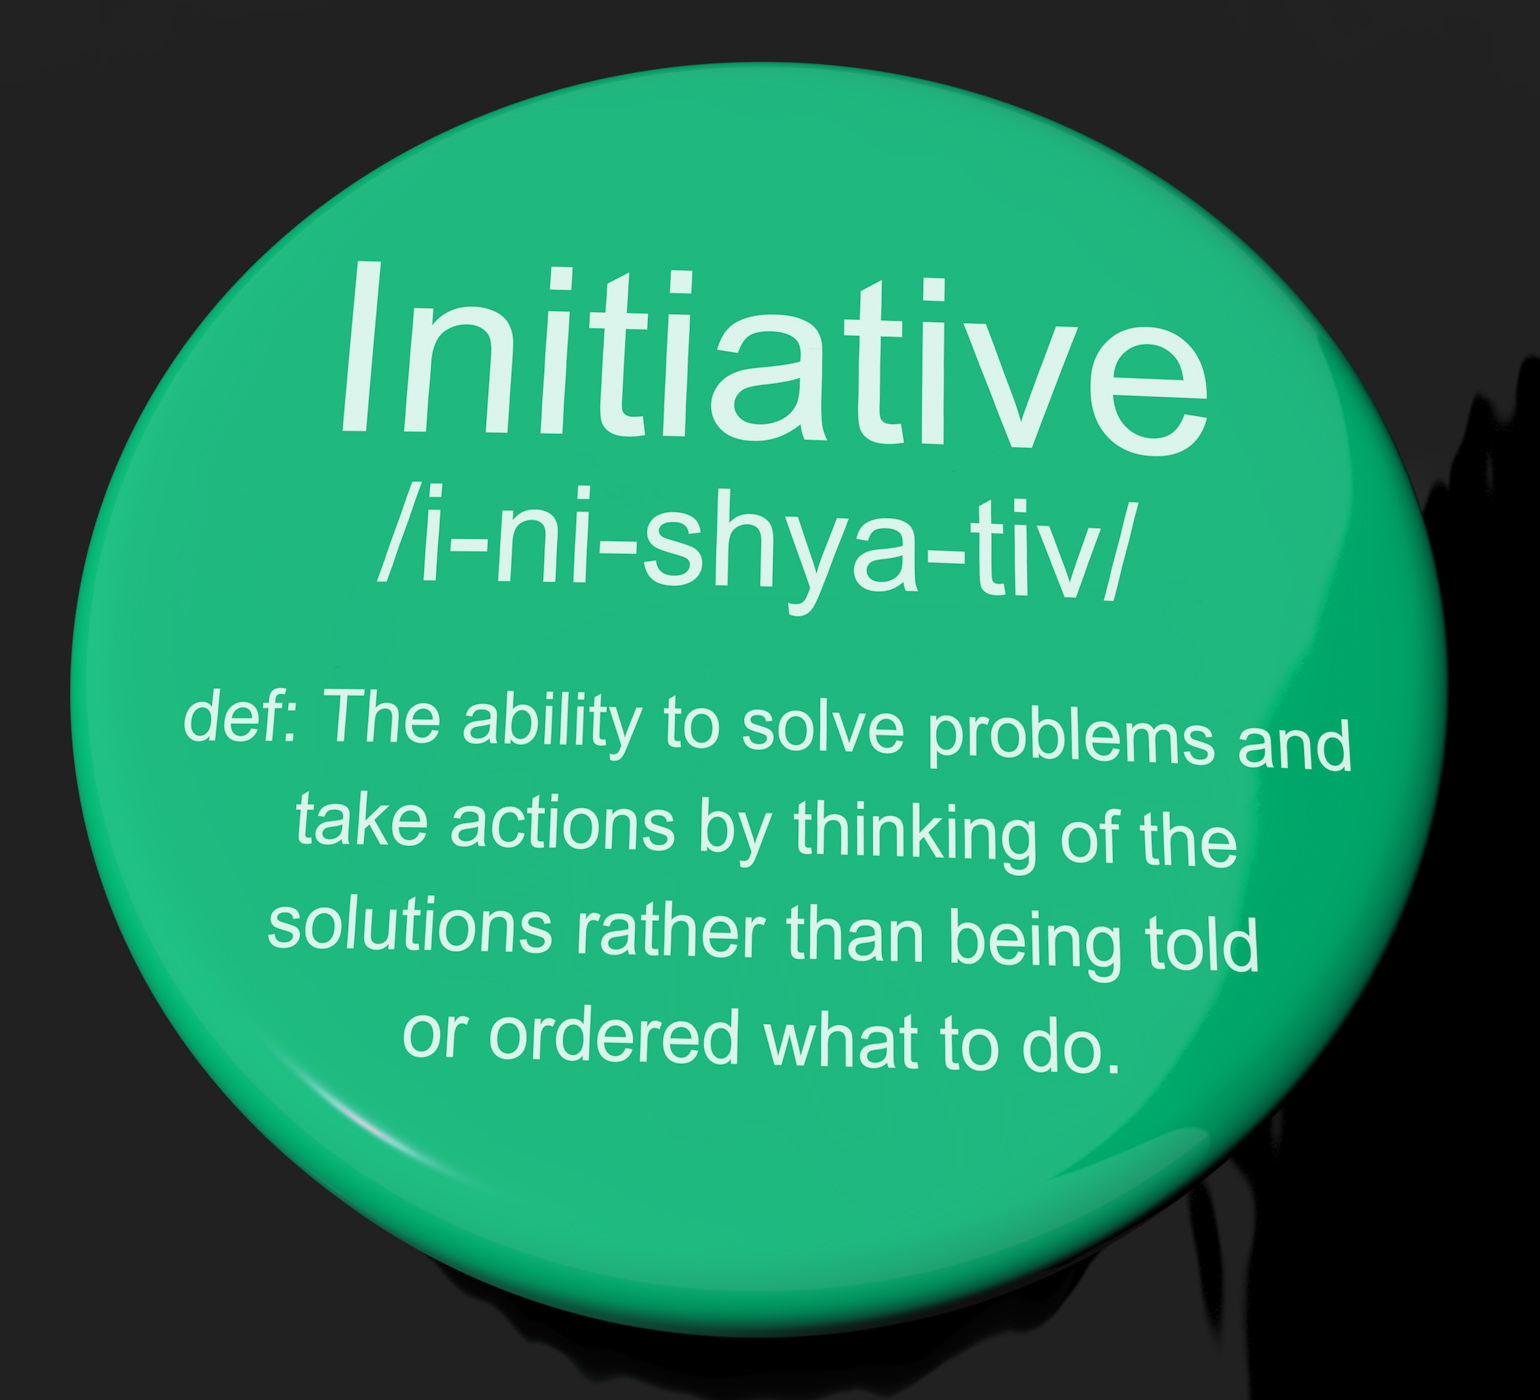 Initiative definition button showing leadership resourcefulness and ac photo